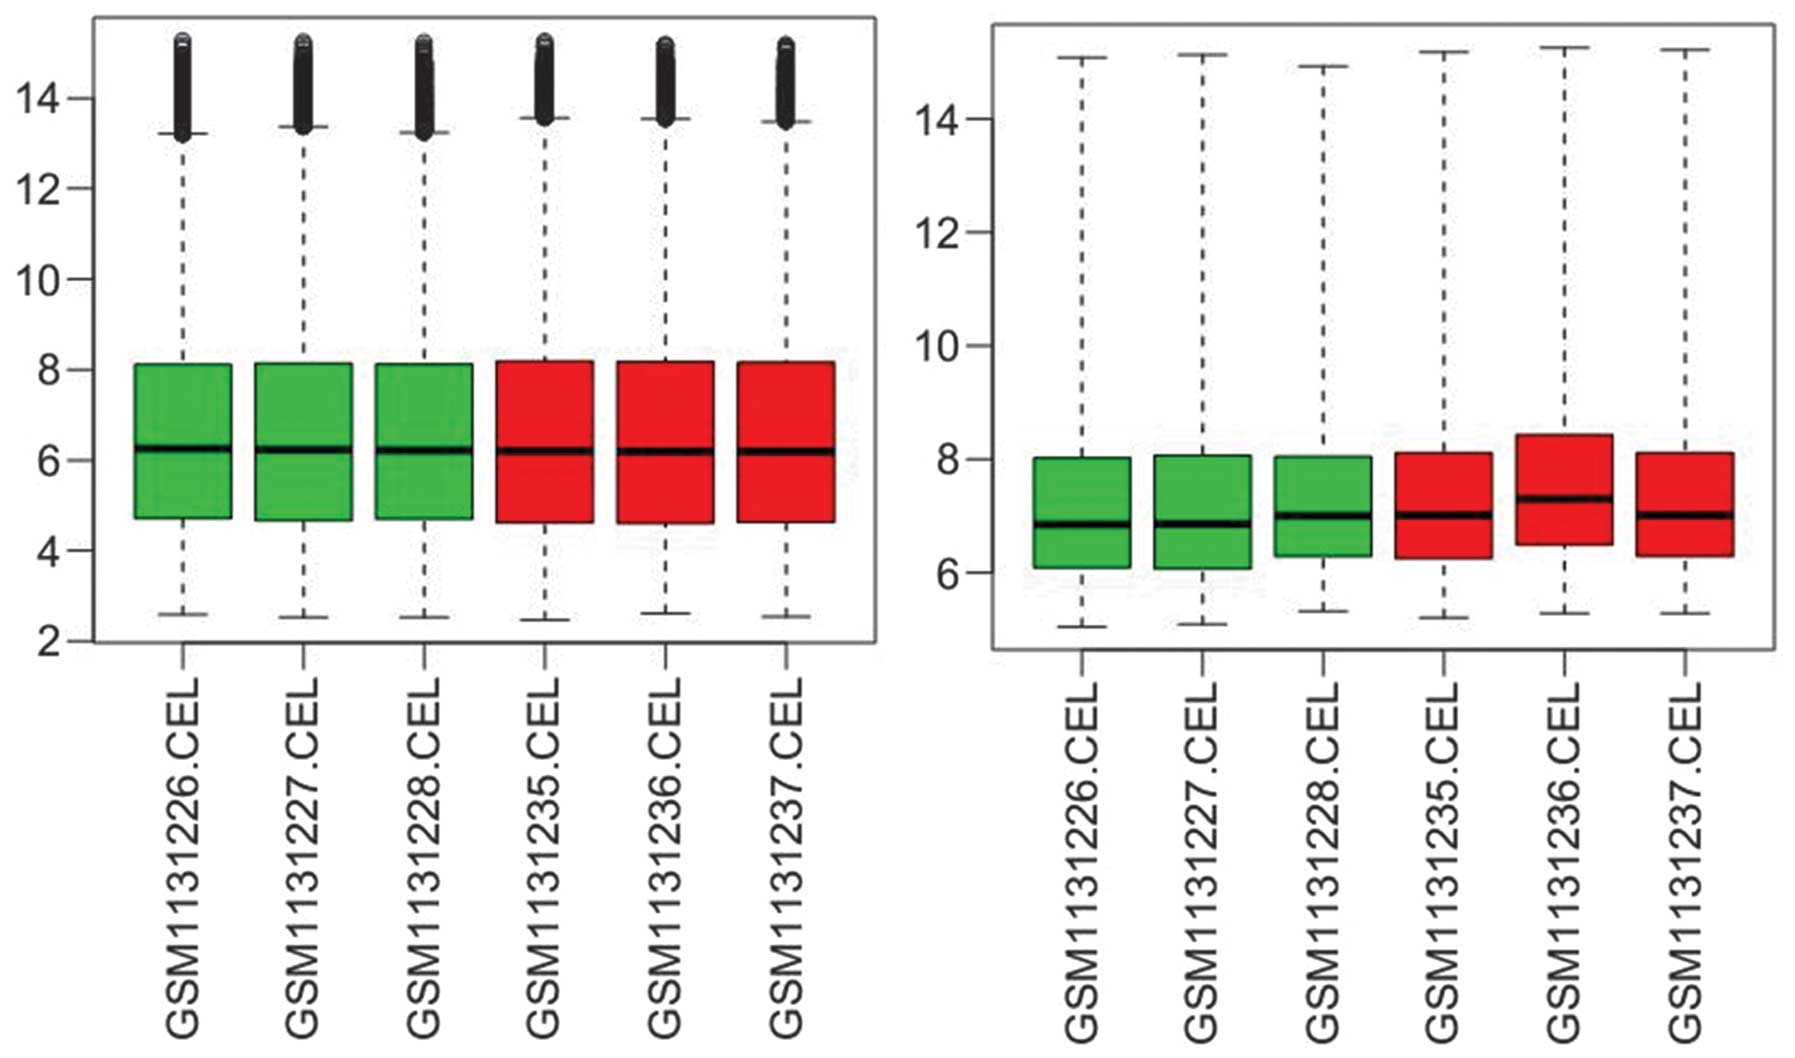 Microarray And Chip Seq Dataysis Revealed Changes In P53 Mediated Transcriptional